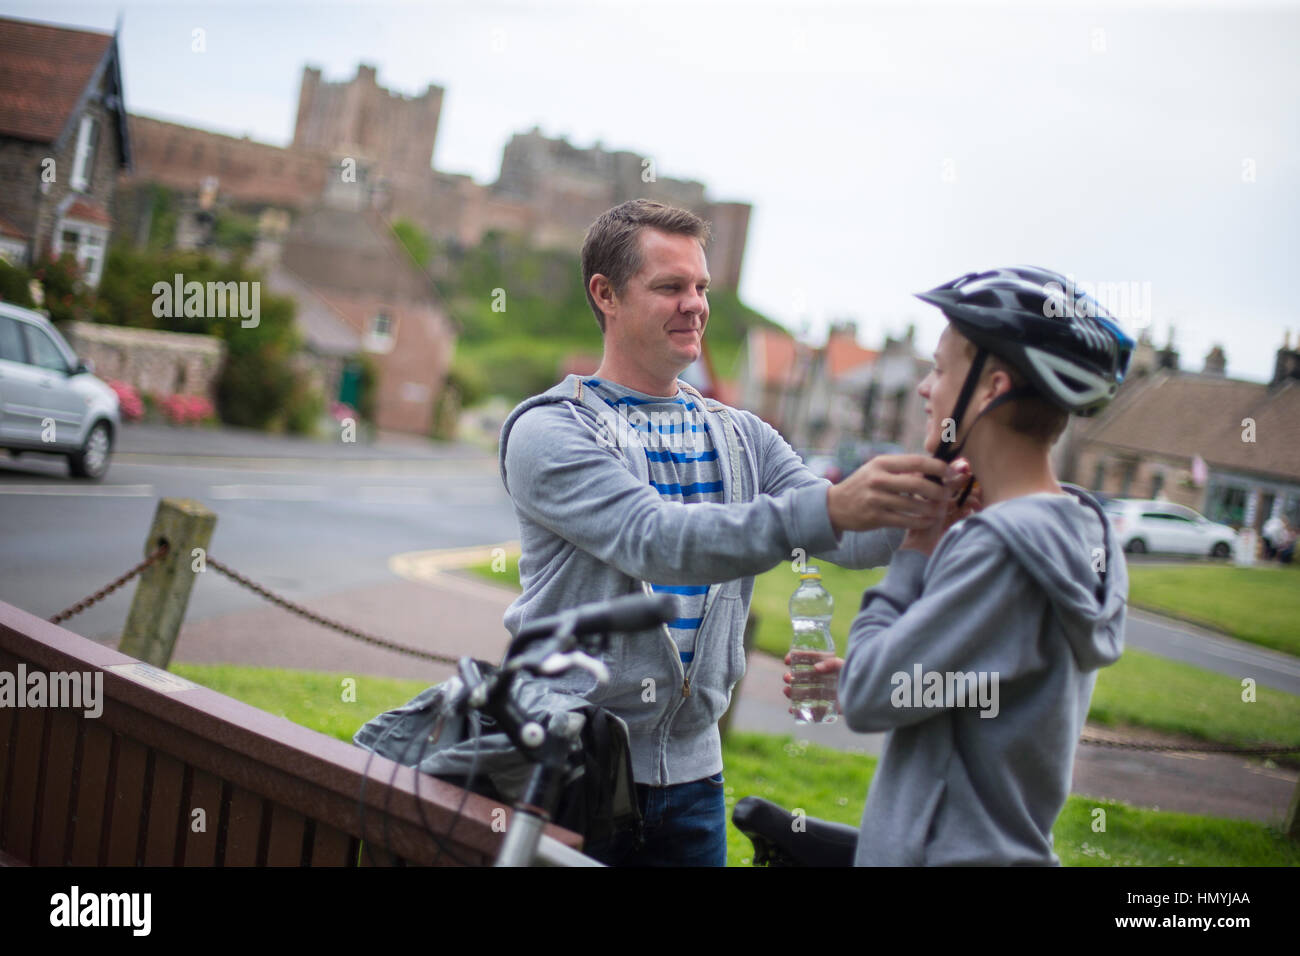 Father putting his helmet on for his son. They are wearing casual clothing and a background of a village and castle - Stock Image